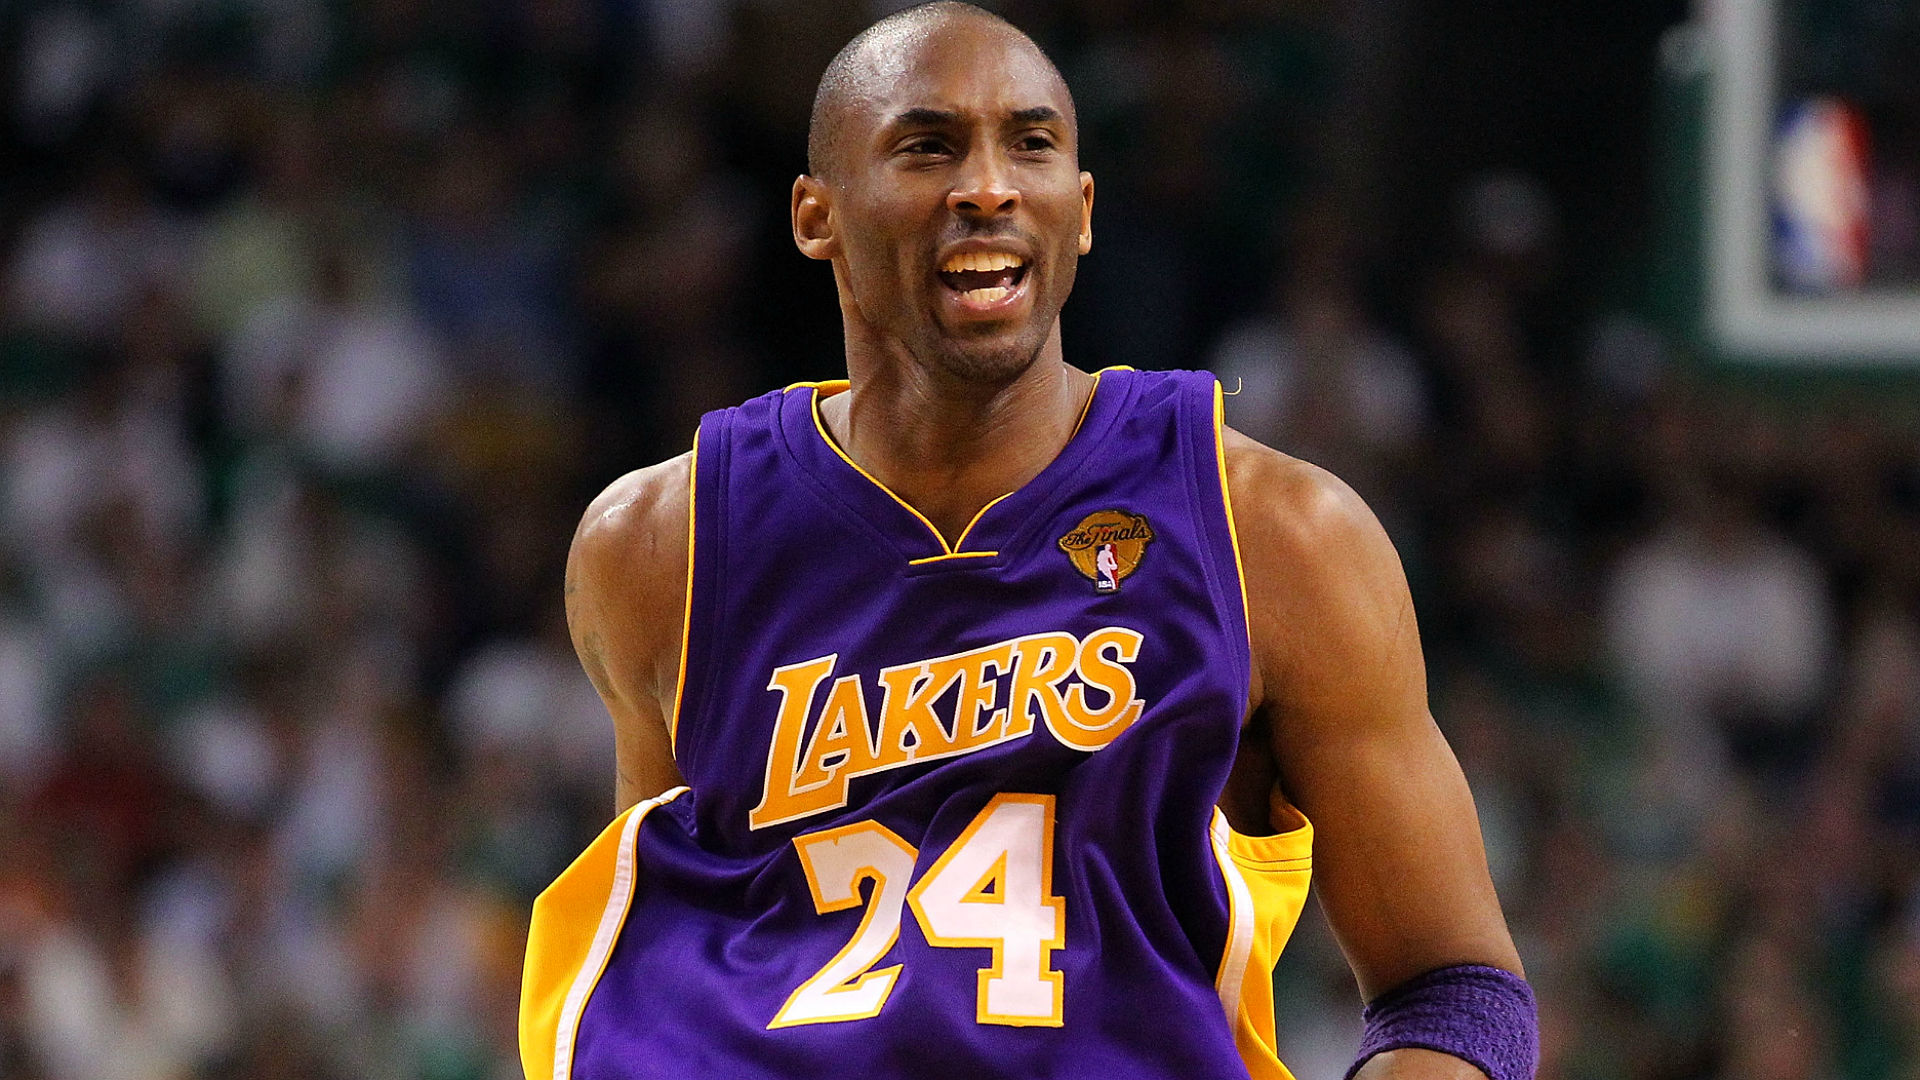 For A Generation Of Athletes Kobe Bryant Defined The Full Sports